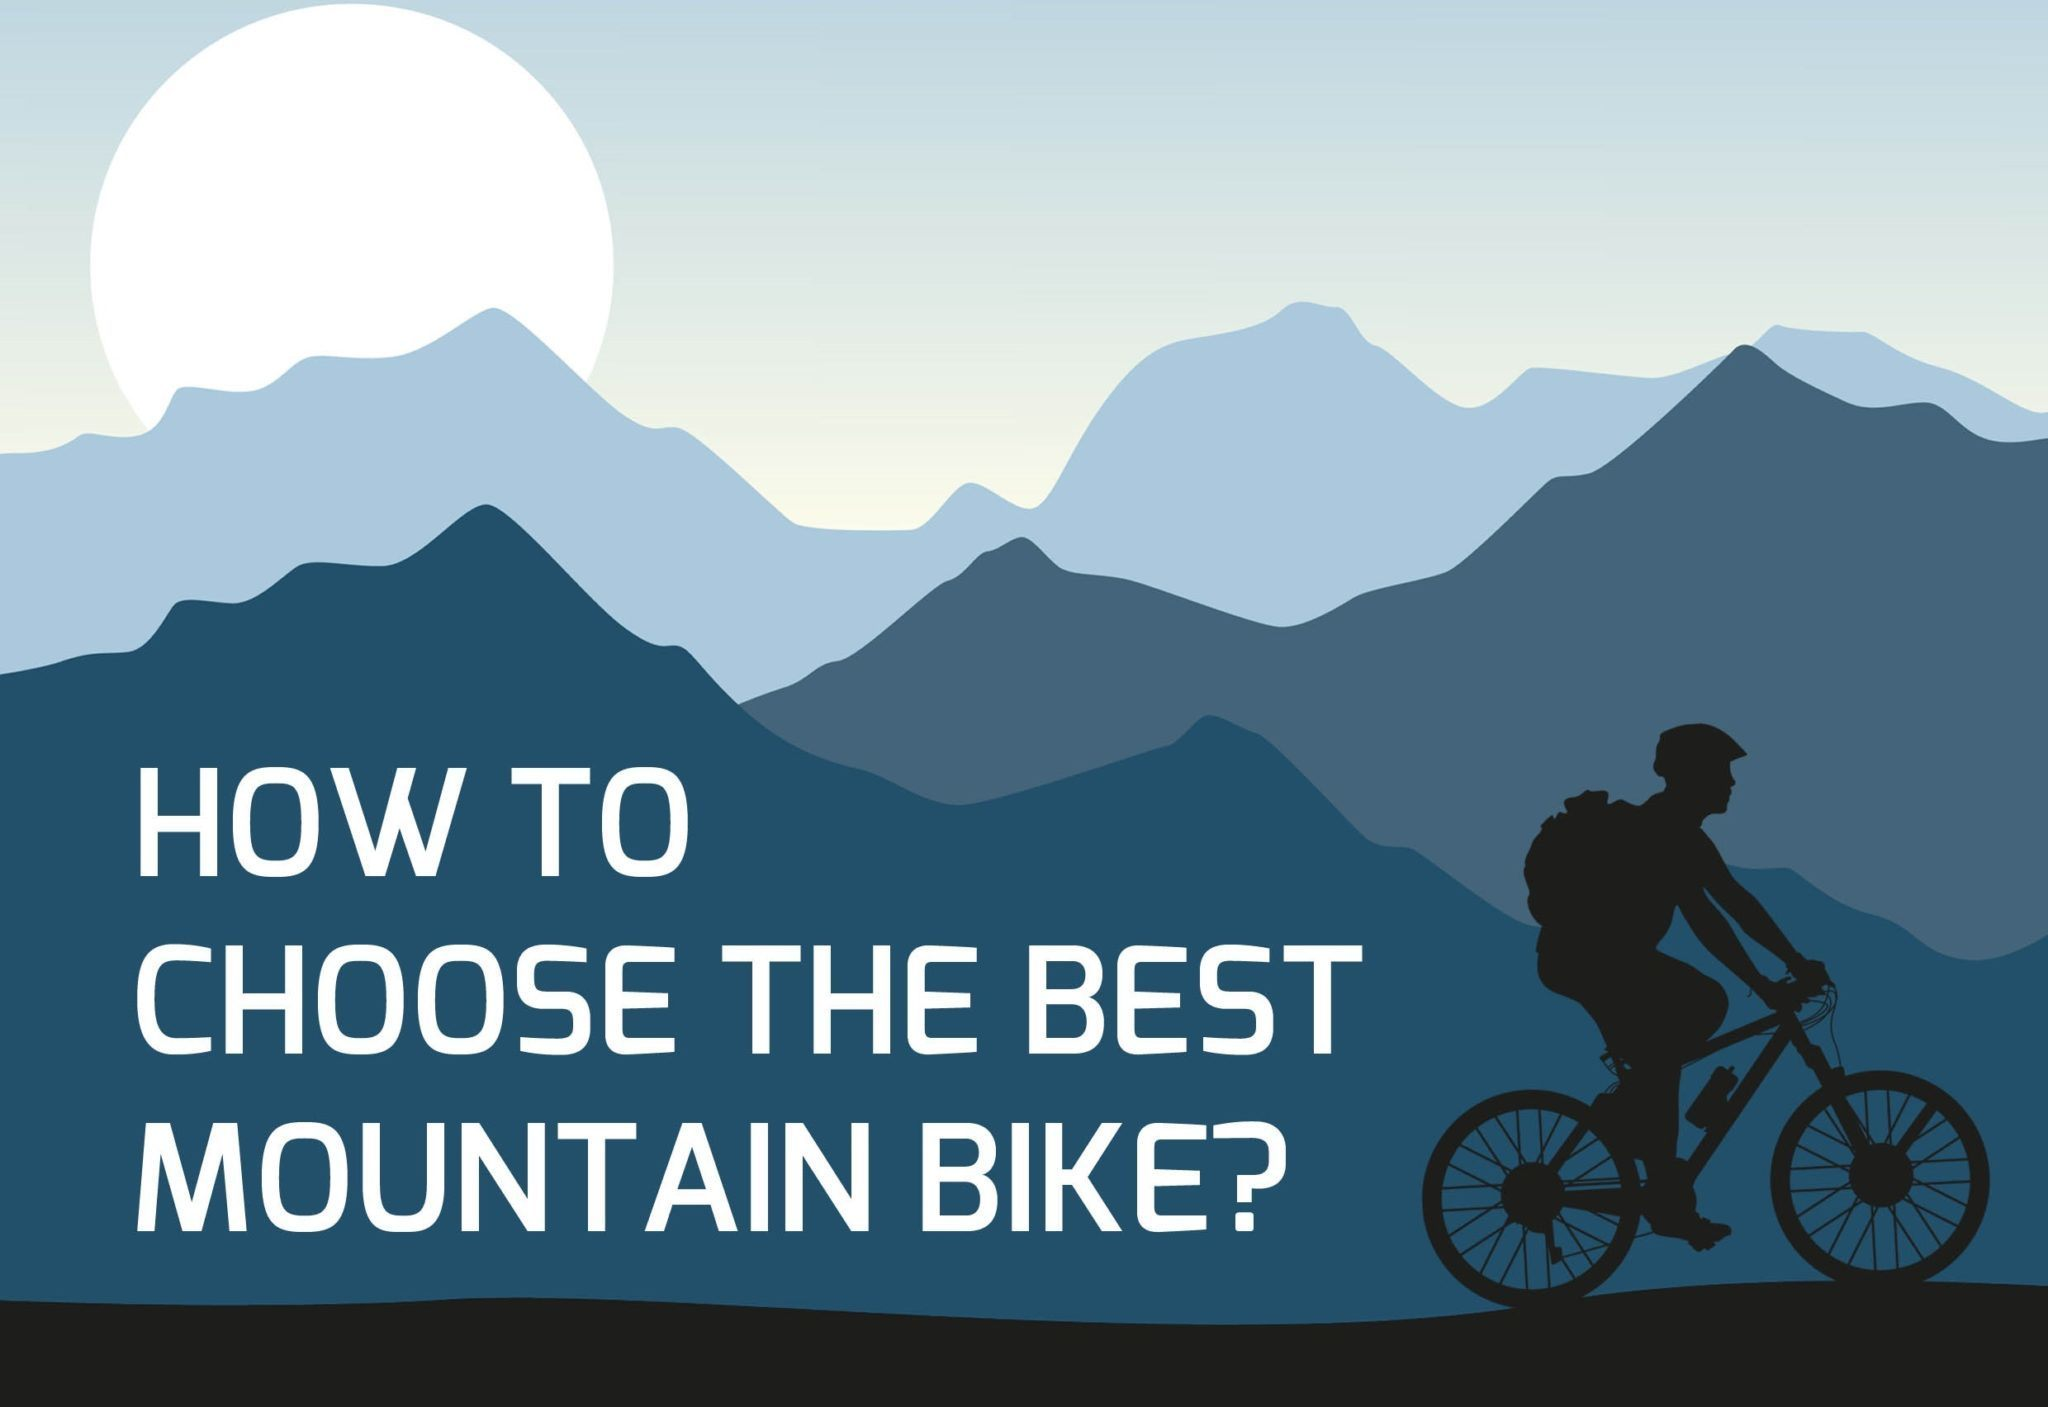 How To Choose The Best Mountain Bike? (Infographic)